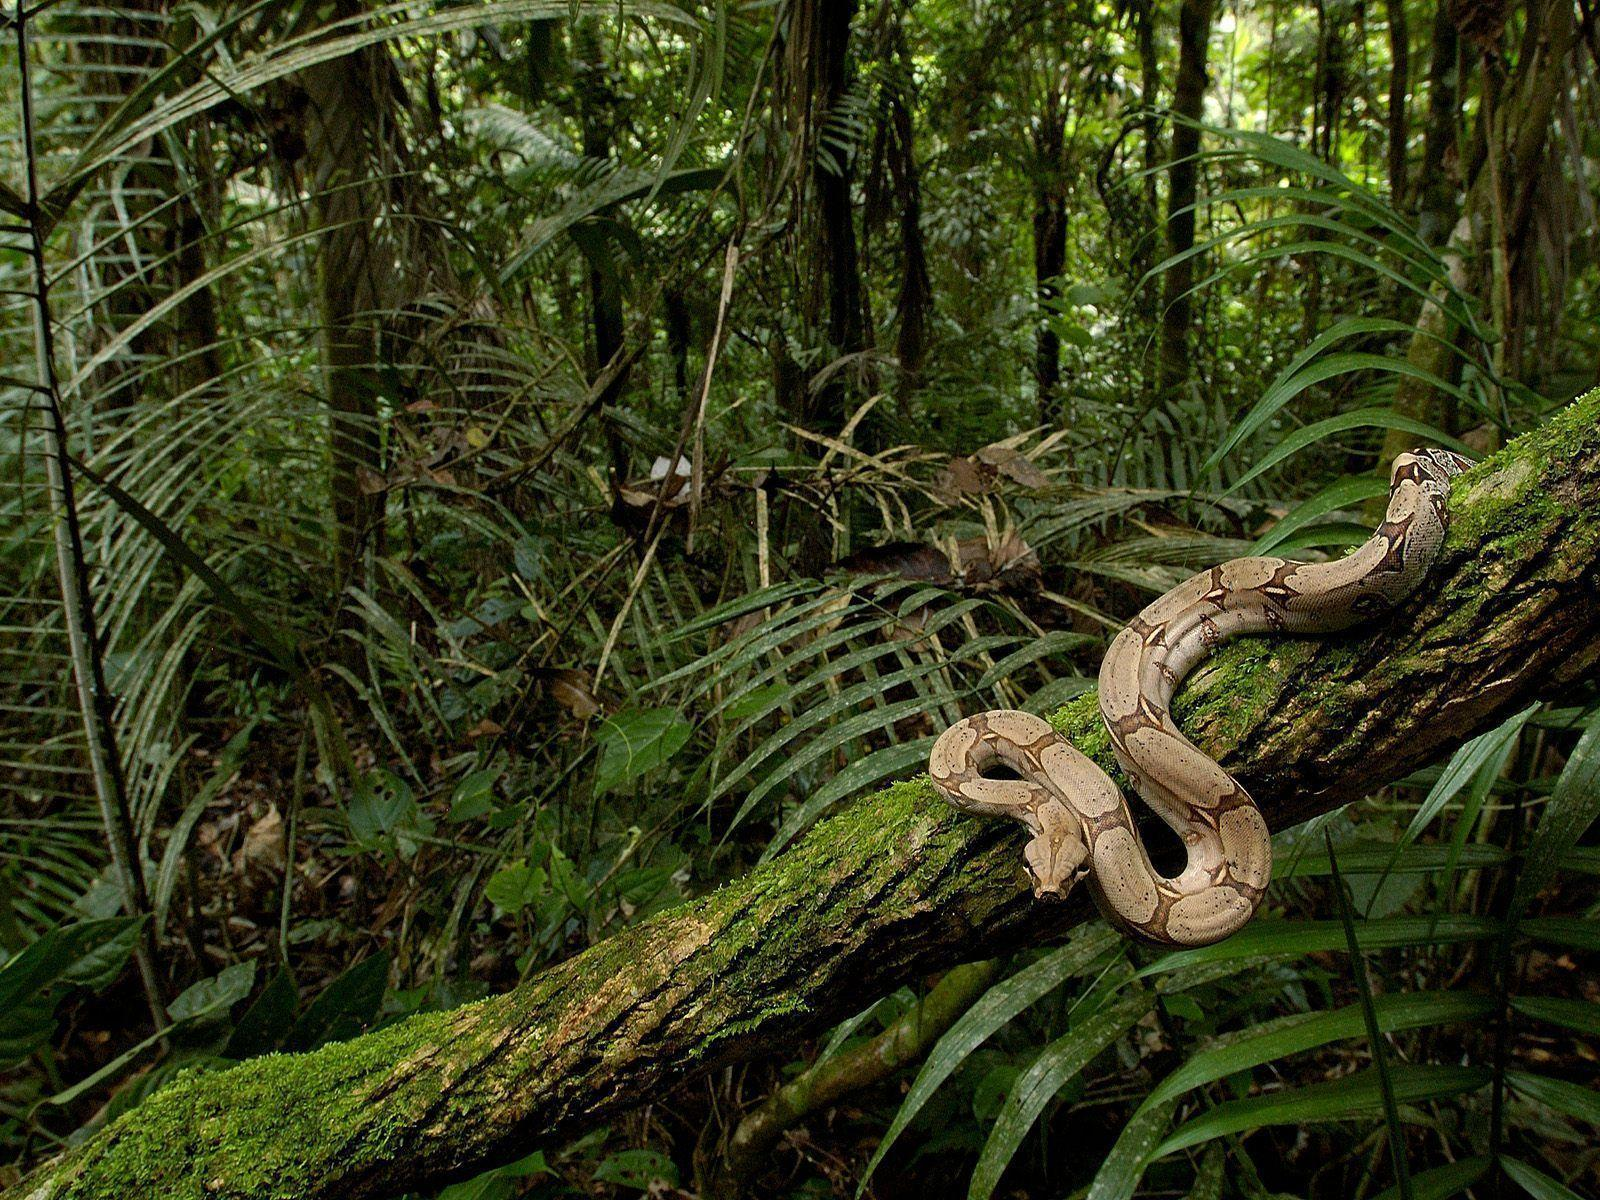 rainforest animal wallpaper pictures - photo #10